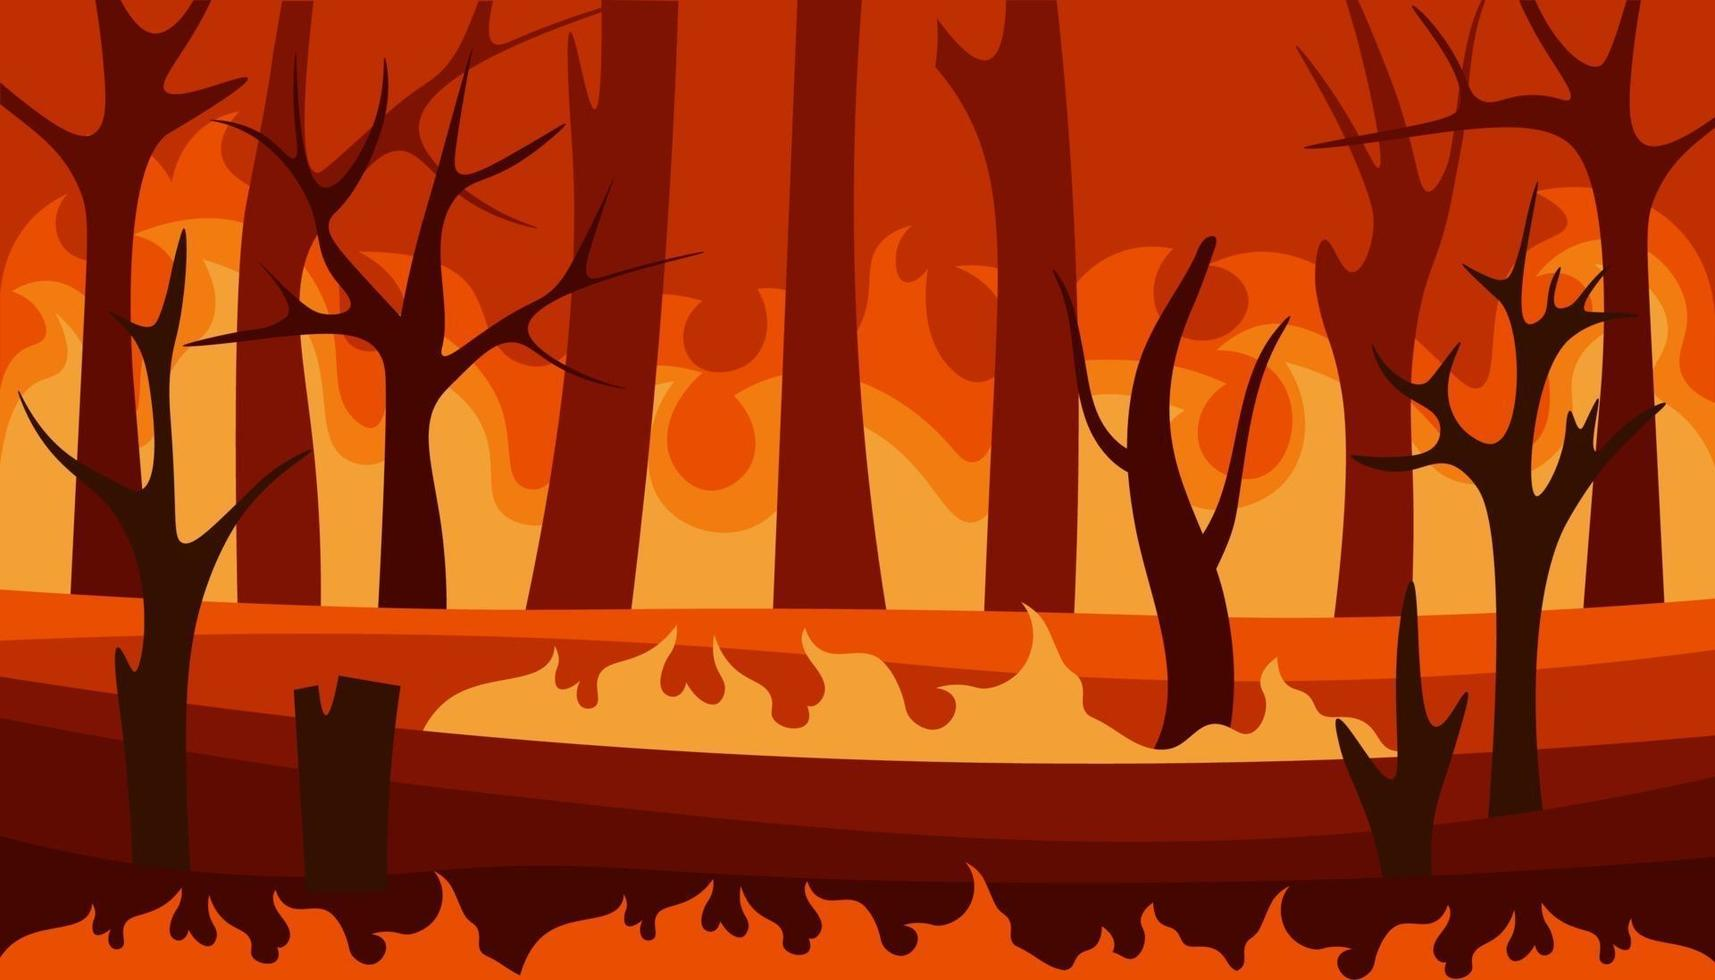 Fire in the forest. Burning wildfire vector